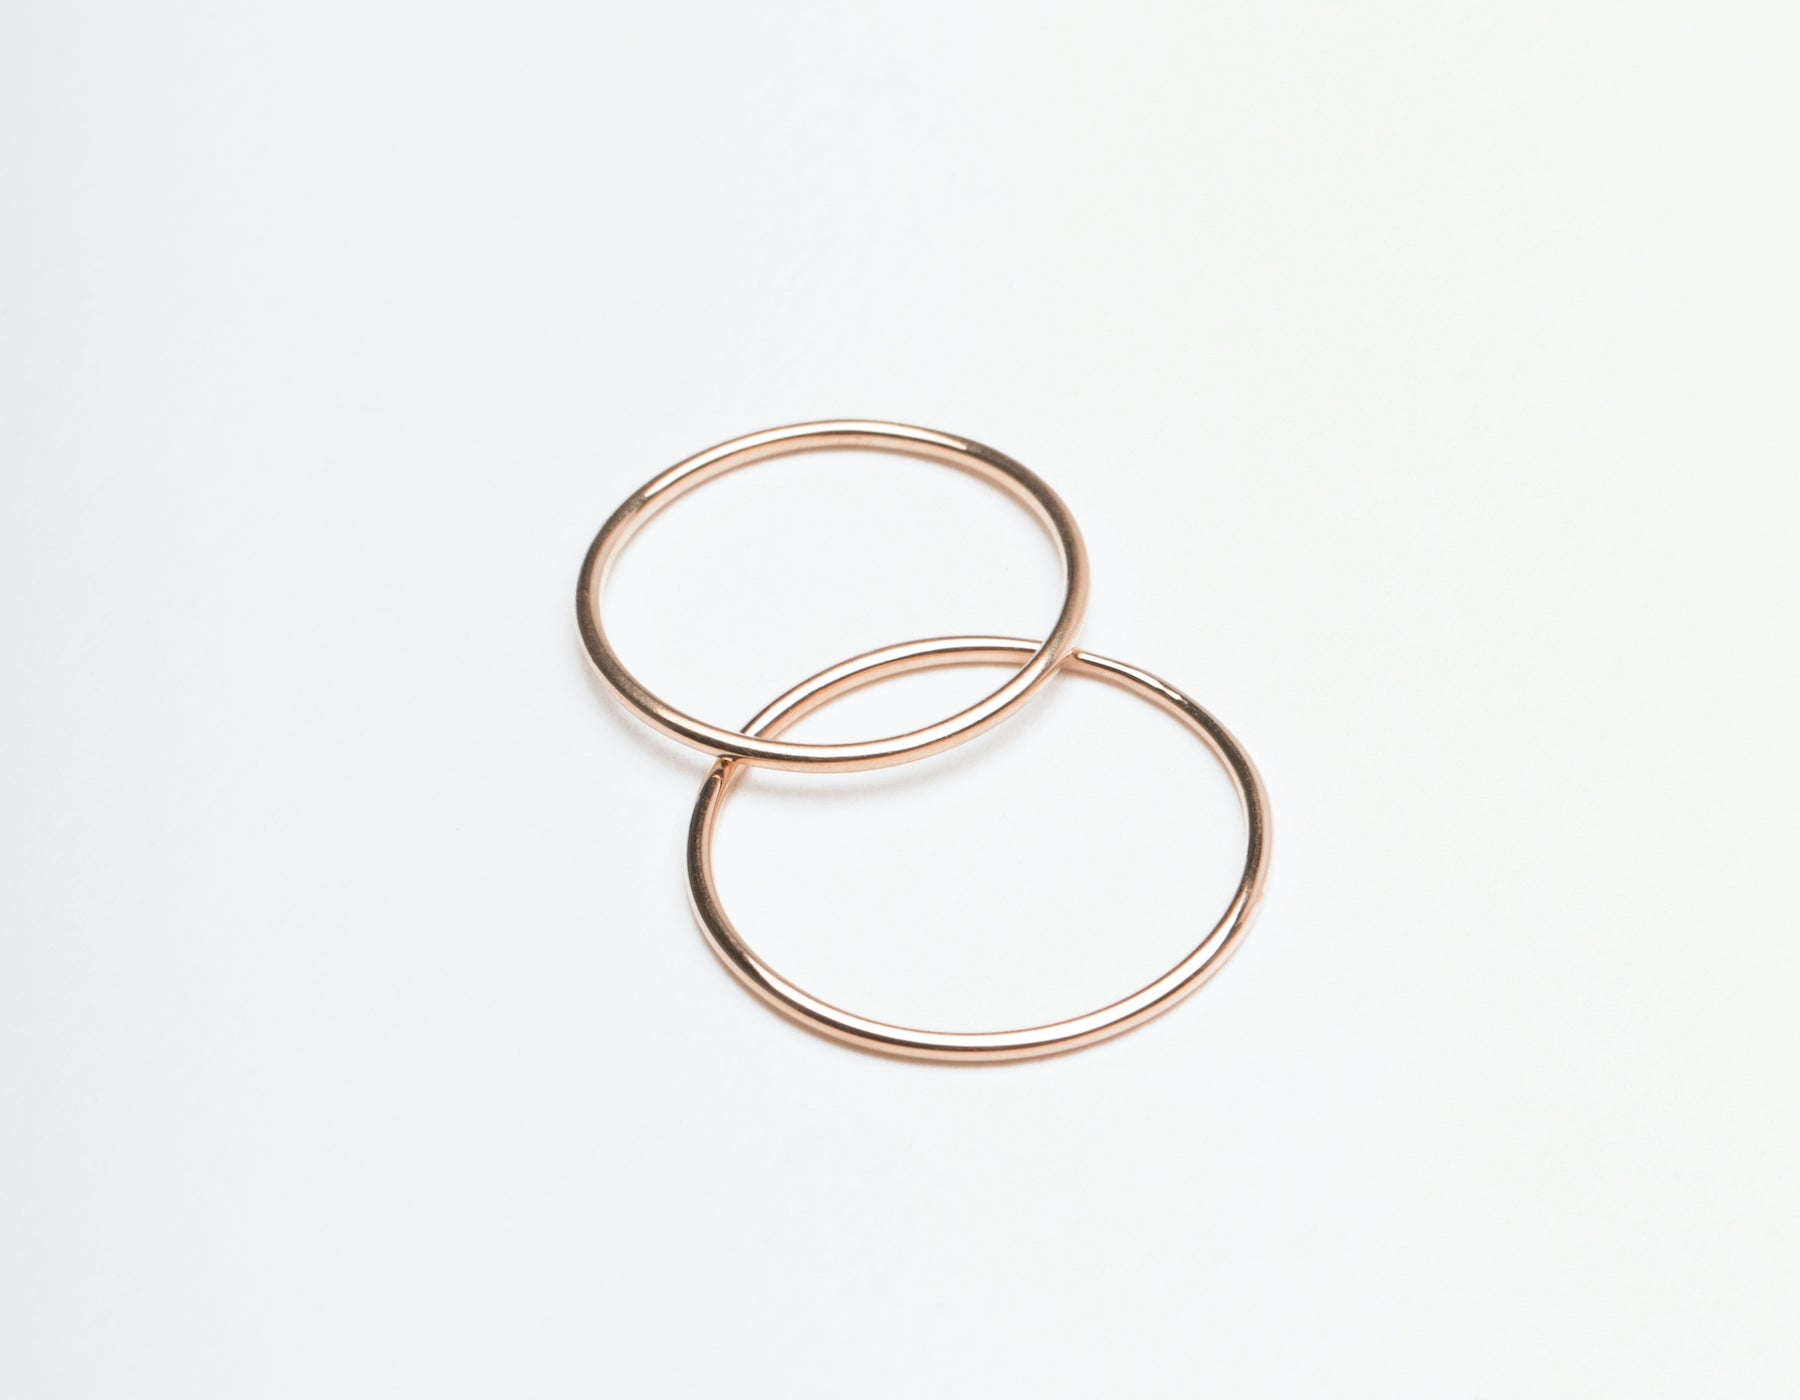 Skinny Stacker Ring 14k solid gold Vrai & Oro plain round thin band, 14K Rose Gold